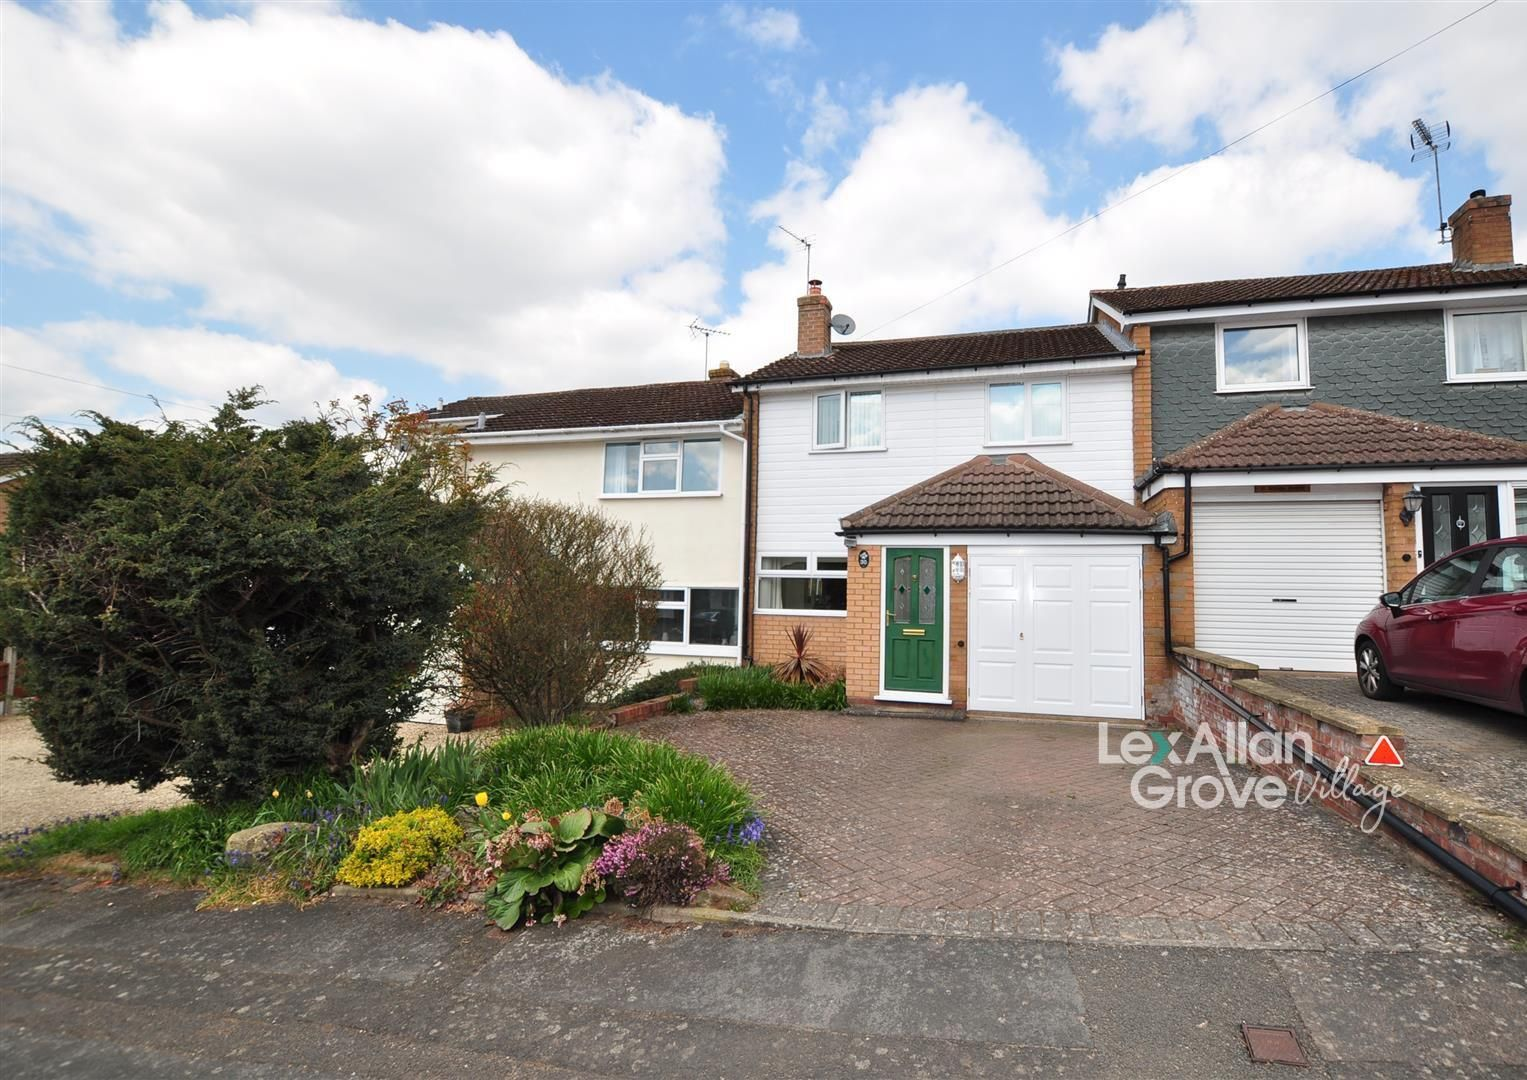 3 bed house for sale in Hagley  - Property Image 1